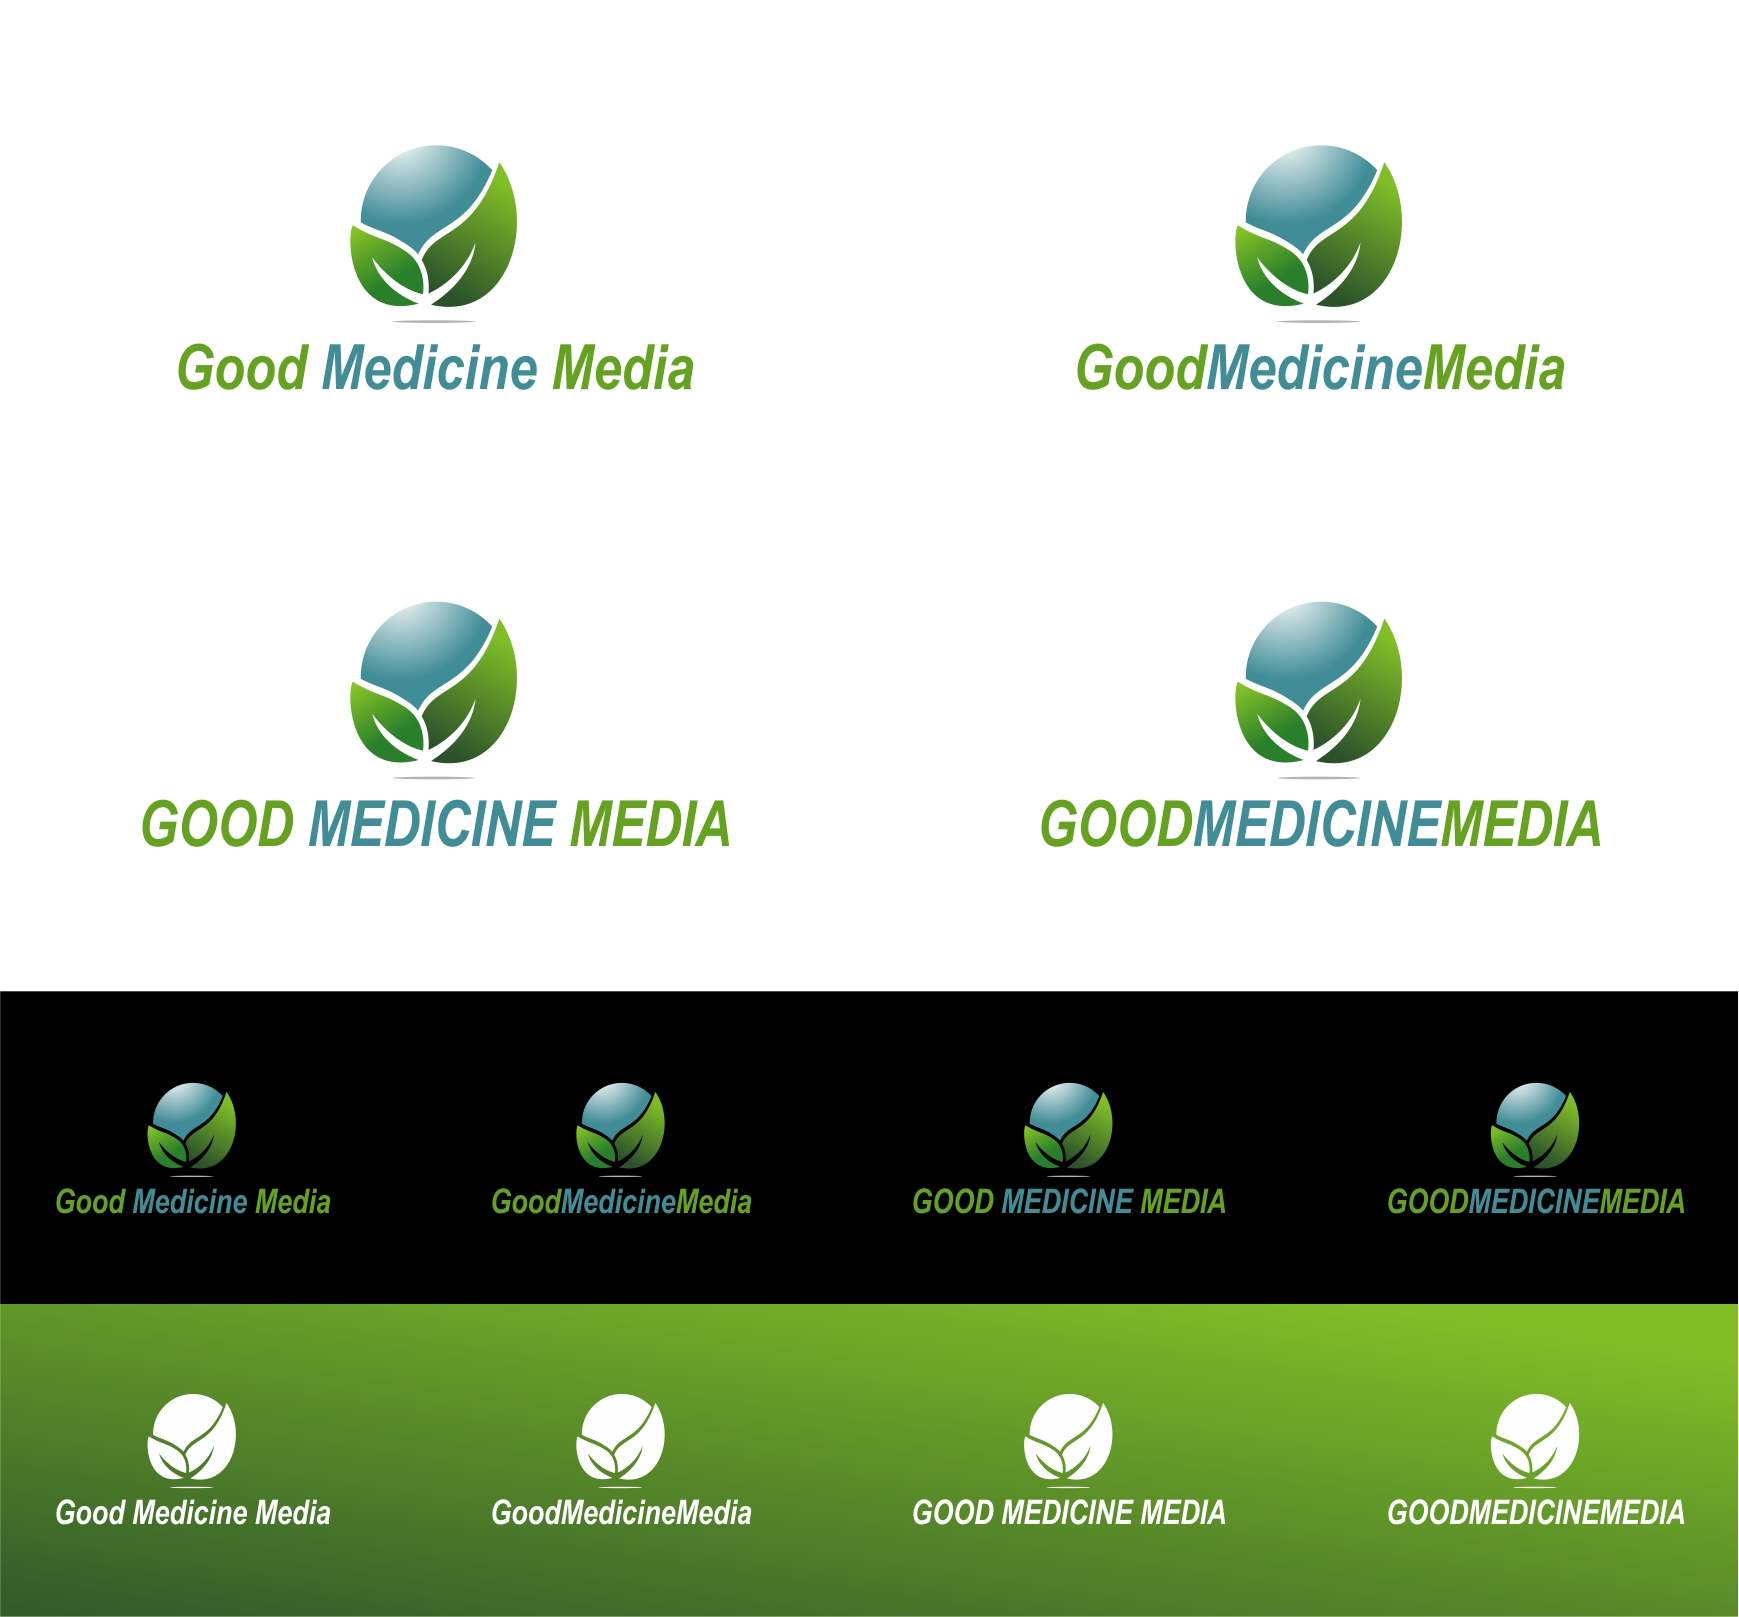 Logo Design by haidu - Entry No. 231 in the Logo Design Contest Good Medicine Media Logo Design.